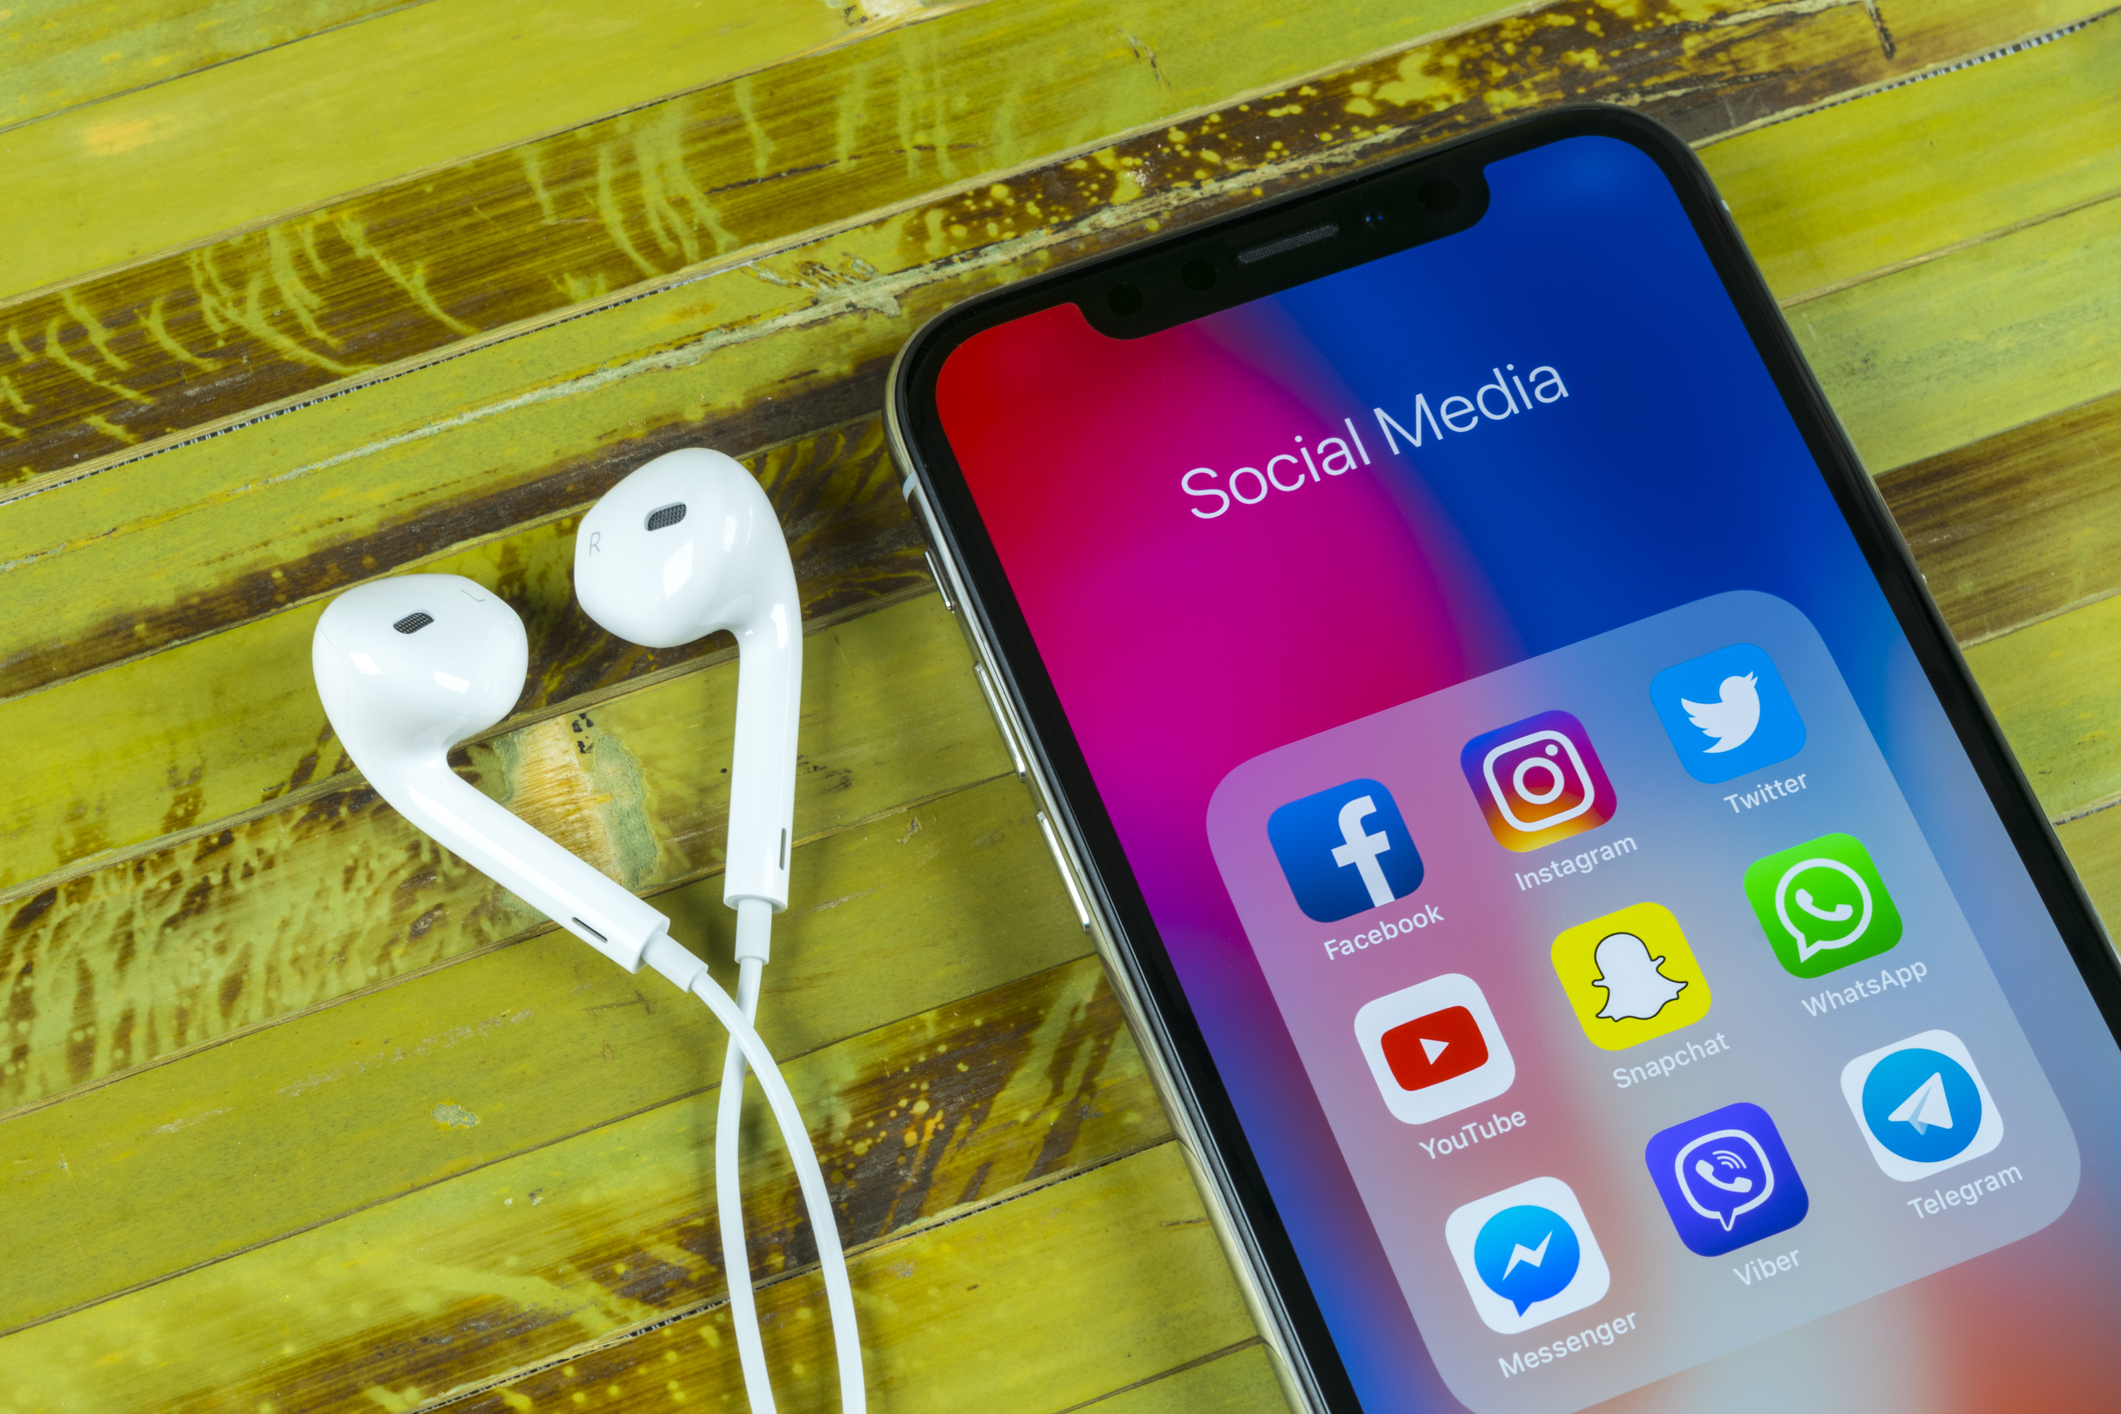 Musicians around the world are using social media to connect with fans while stuck in quarantine due to COVID-19